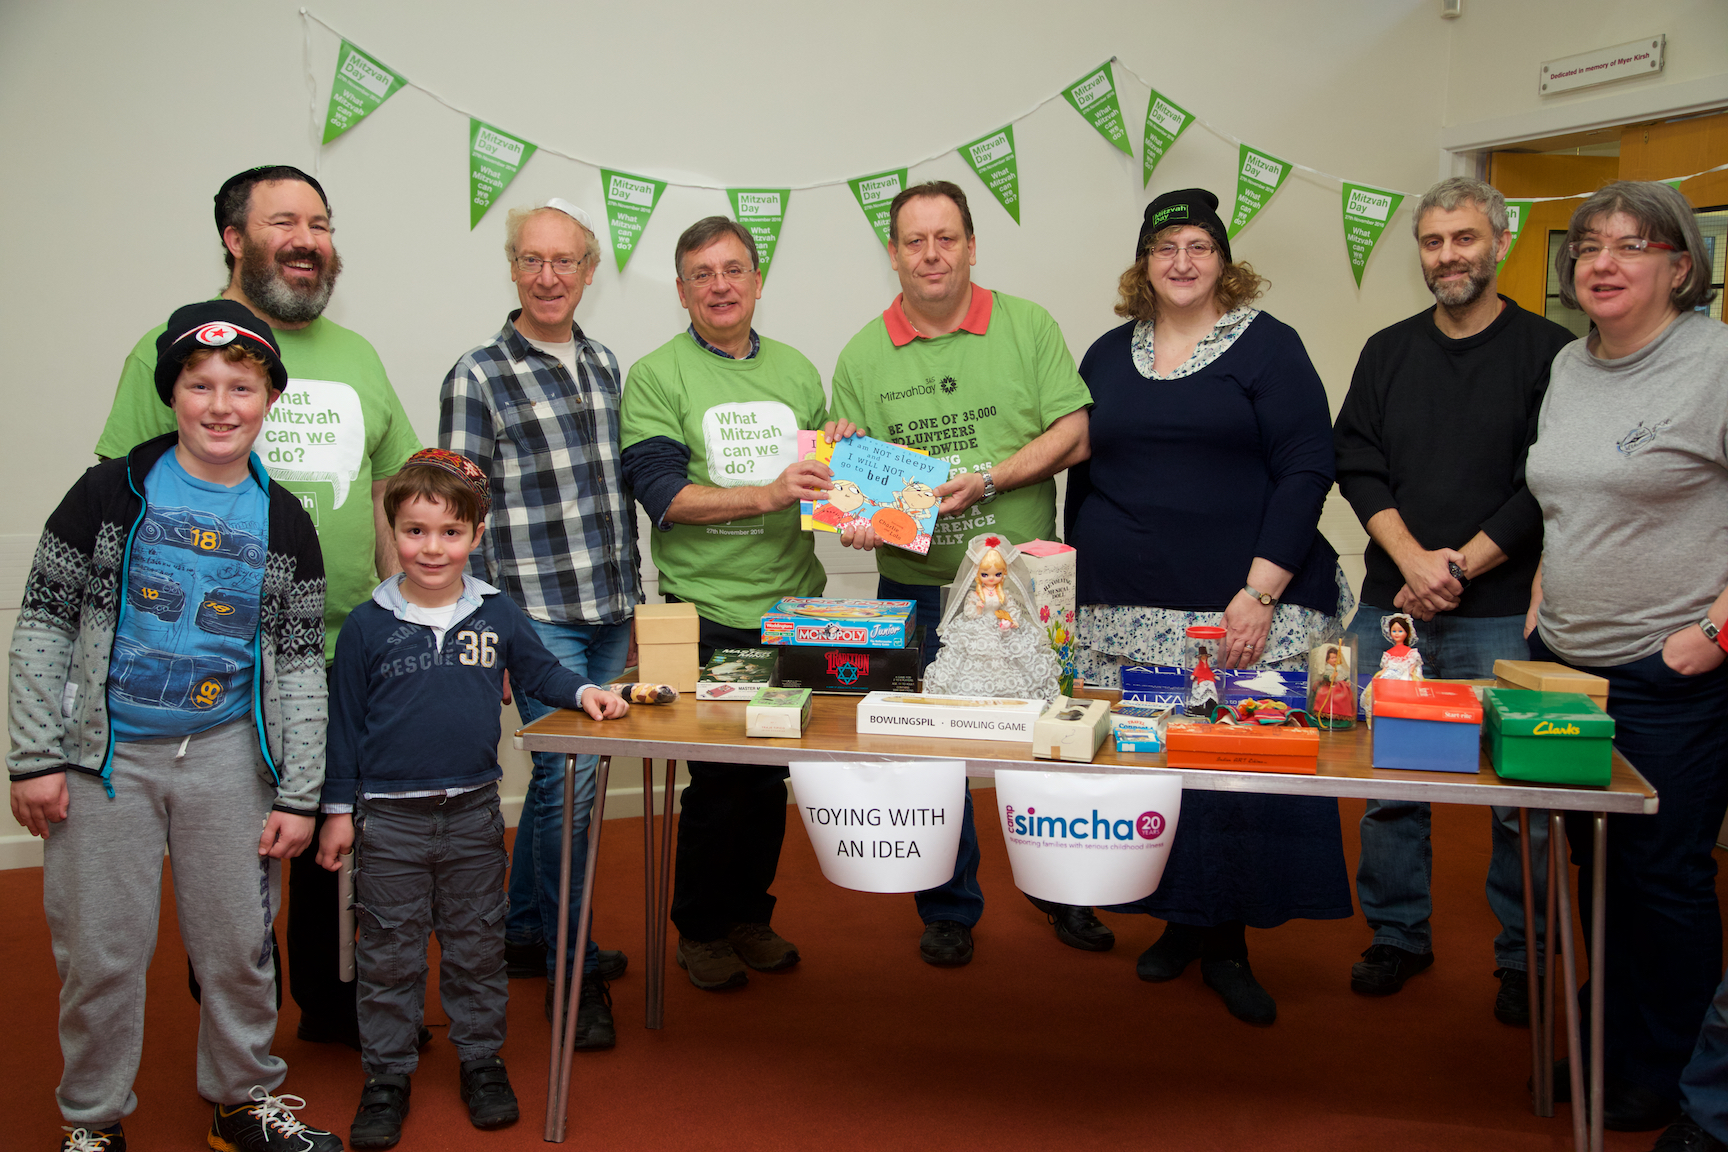 barnet-mitzvah-day-andrew-dismore-am-with-some-mitzvah-day-attenedees-including-amanda-jackson-chairperson